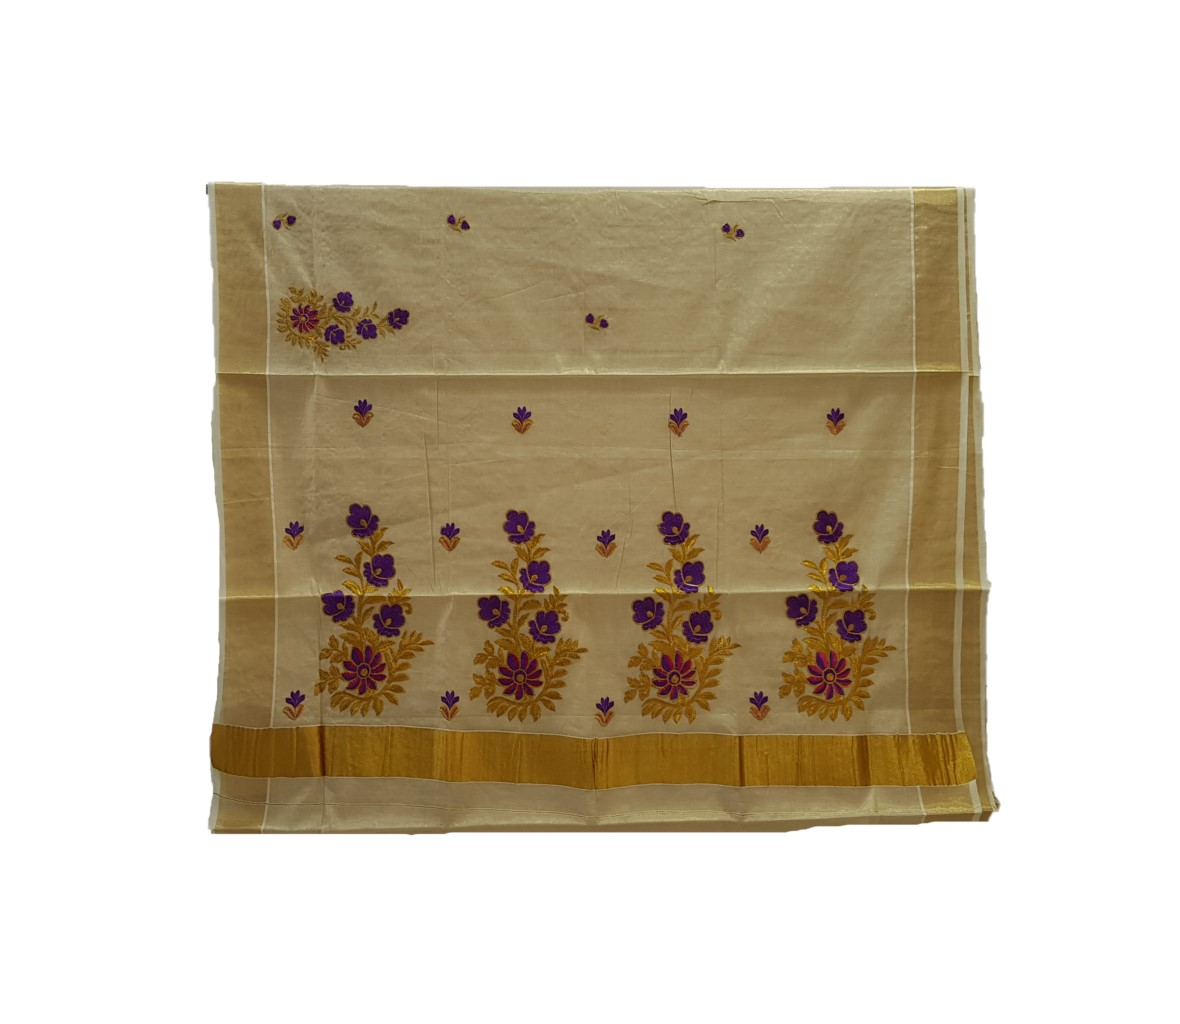 Kerala Kasavu Tissue Saree with Floral Thread Embroidery Offwhite Gold VioletPink : Picture